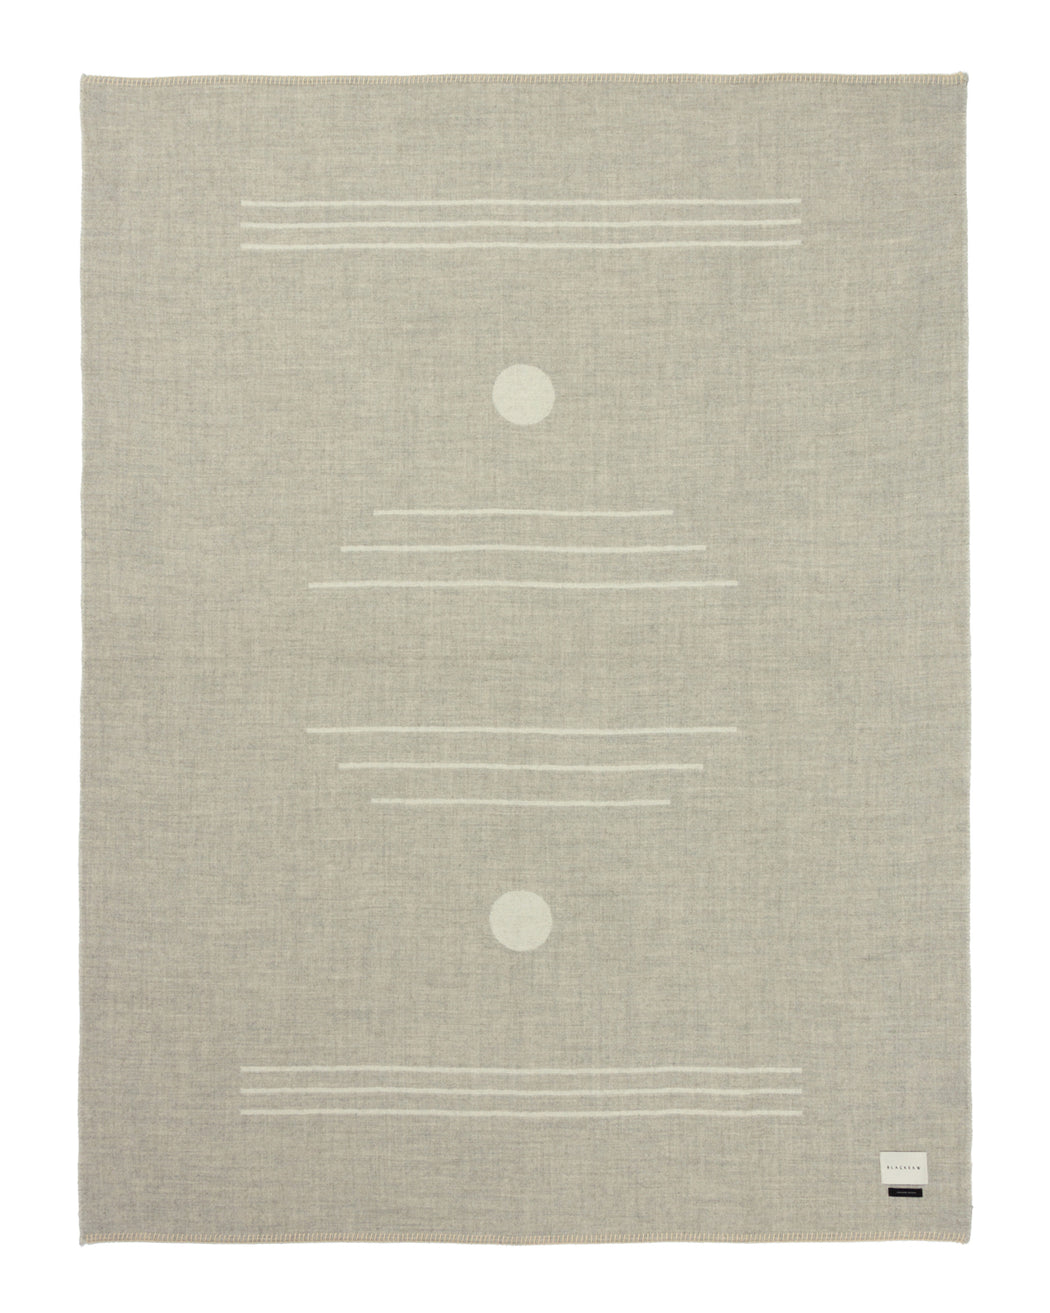 Harvest Moon Reversible Throw - Light Heather/Ivory